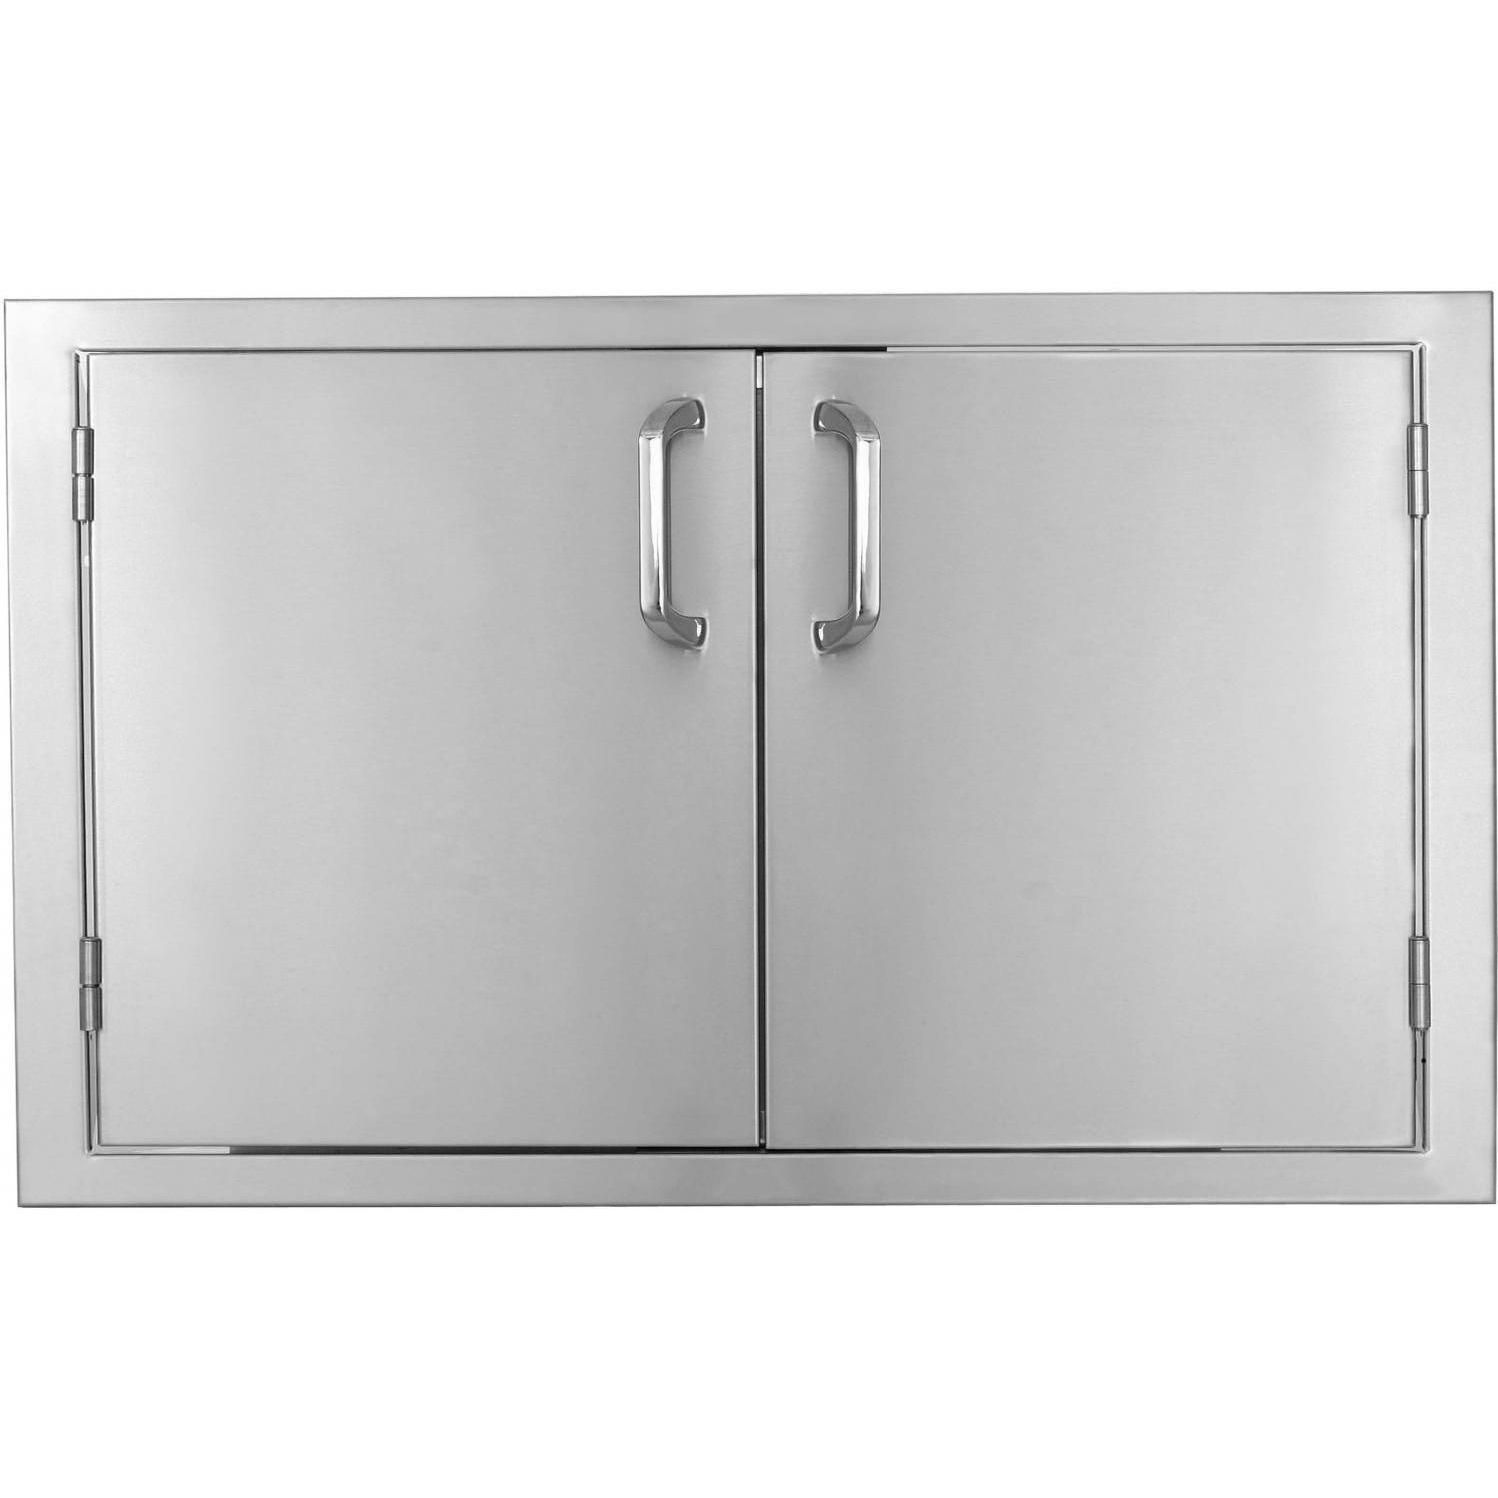 Stainless Steel Doors For Outdoor Kitchens